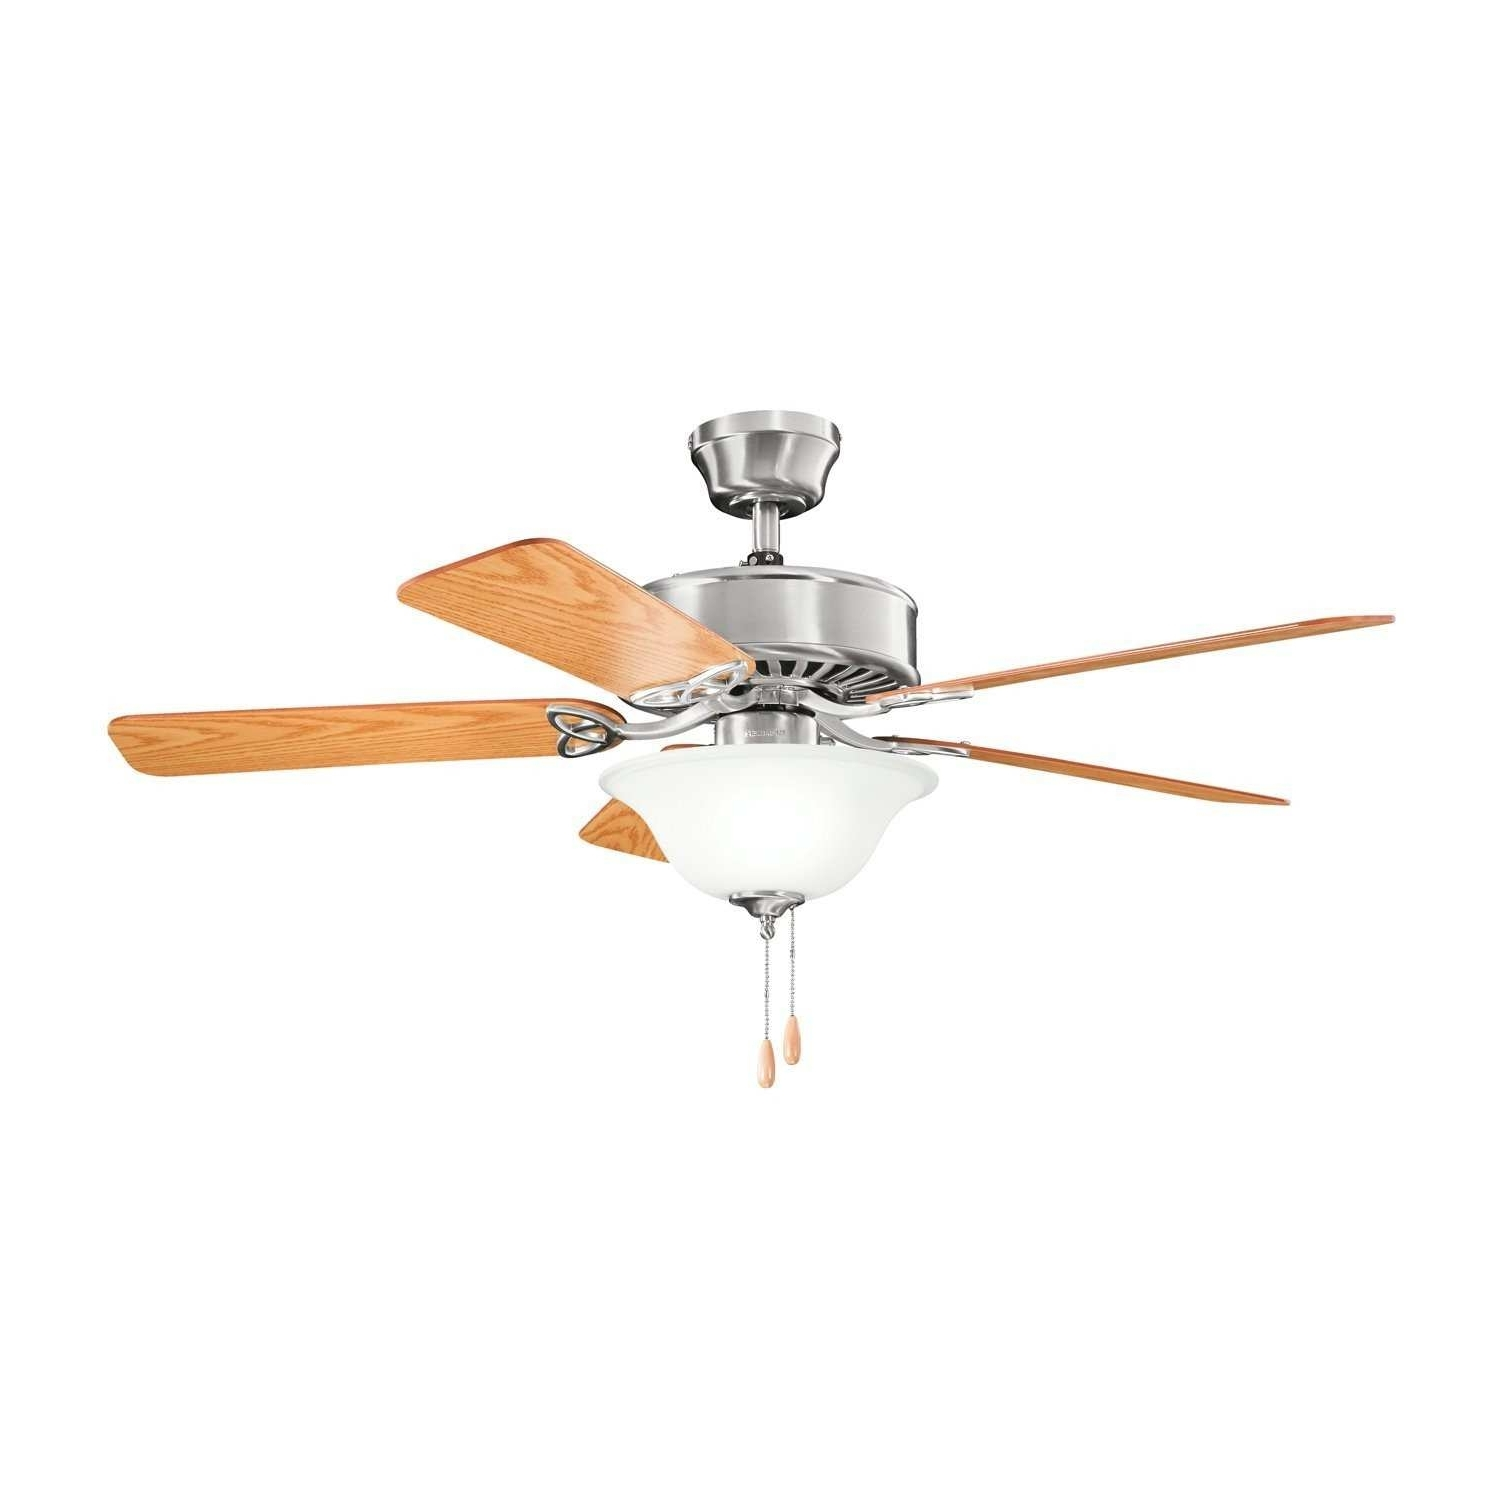 Outdoor Ceiling Fans With Metal Blades Elegant Kichler Mwh 50 In Well Known Outdoor Ceiling Fans At Amazon (View 21 of 21)